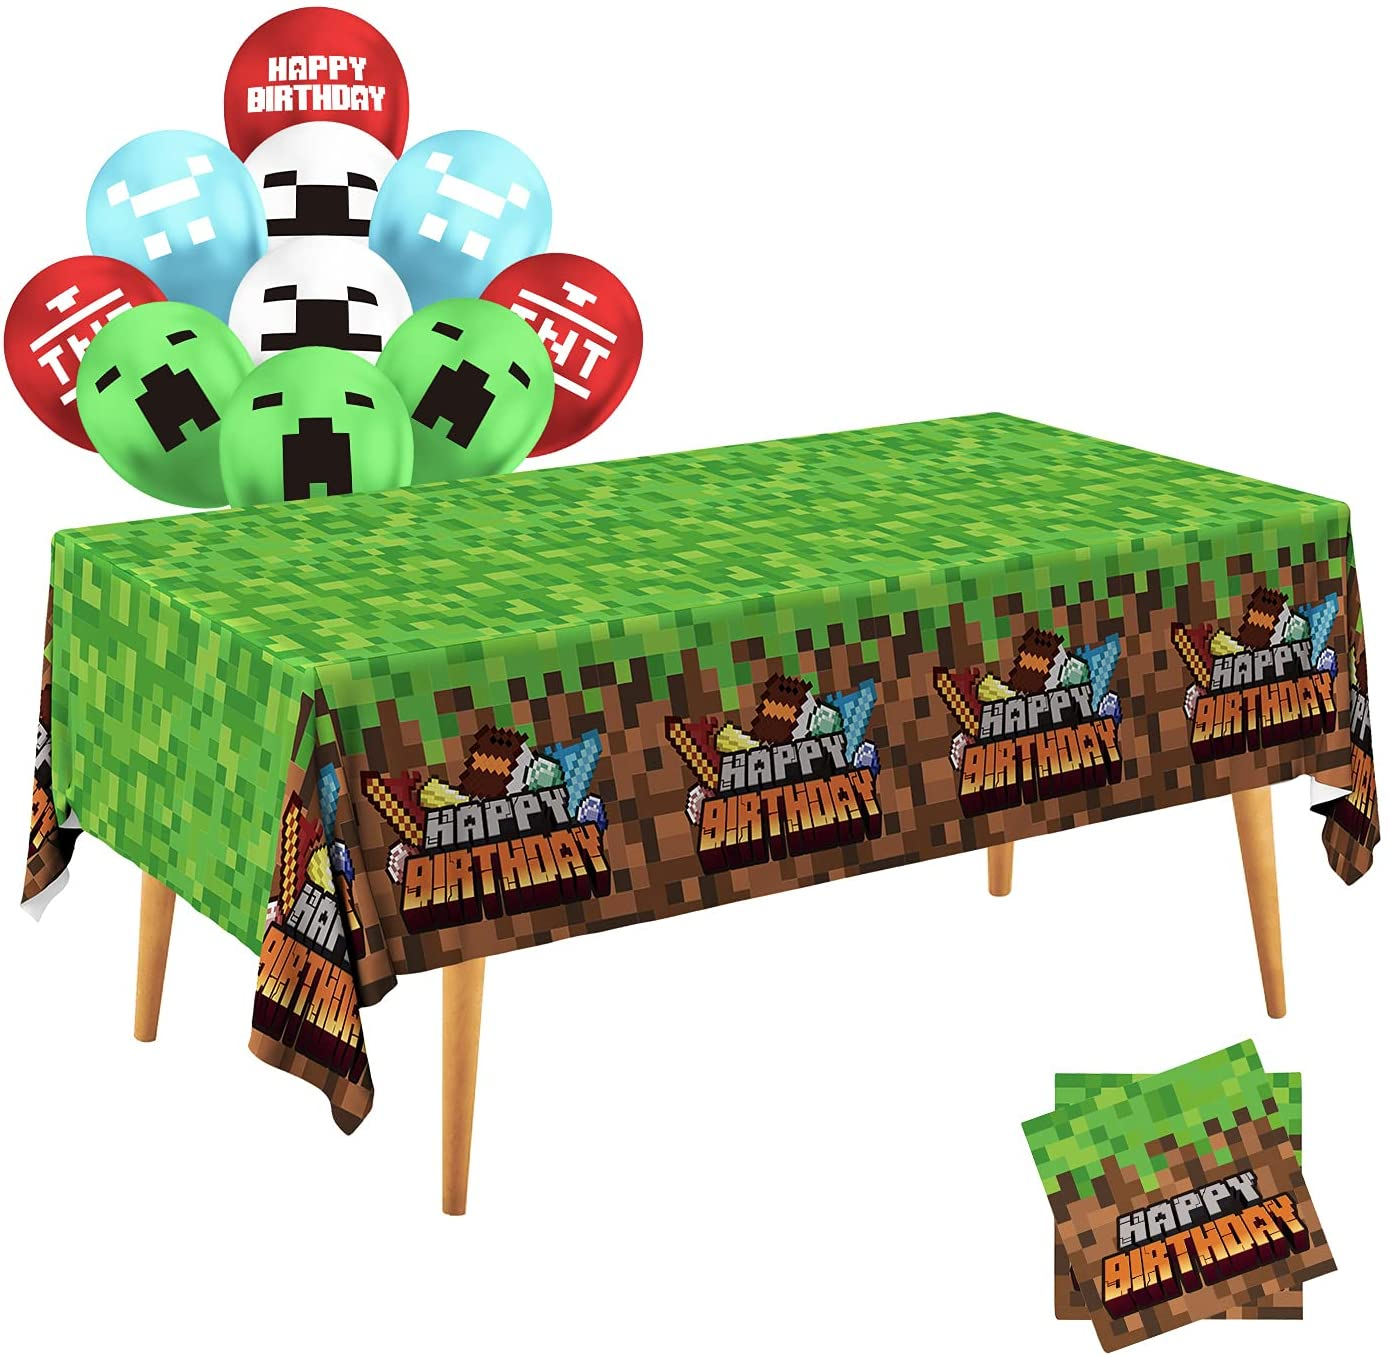 Manufacturer direct delivery 100% quality warranty! Gatherfun Mining Themed Party Supplies Disposable Tablecloth 2 P